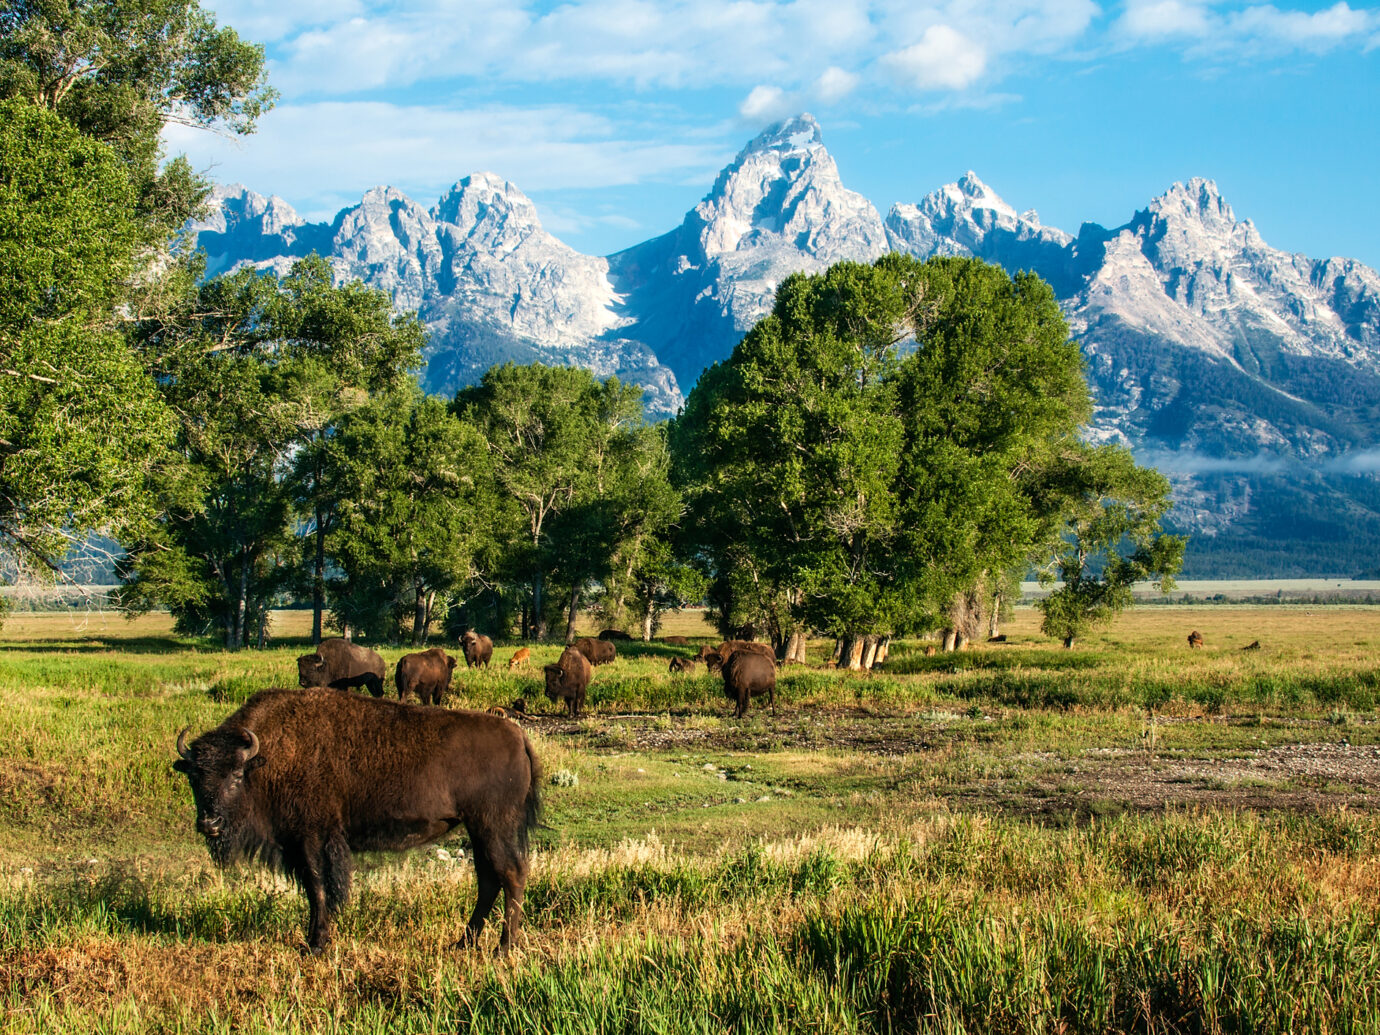 A solitary buffalo bull gazes toward camera in the foreground while his herd grazes in the middle ground and the Grand Tetons loom in the background. Composition includes generous copy space lower right. Captured near Jackson, Wyoming, USA.